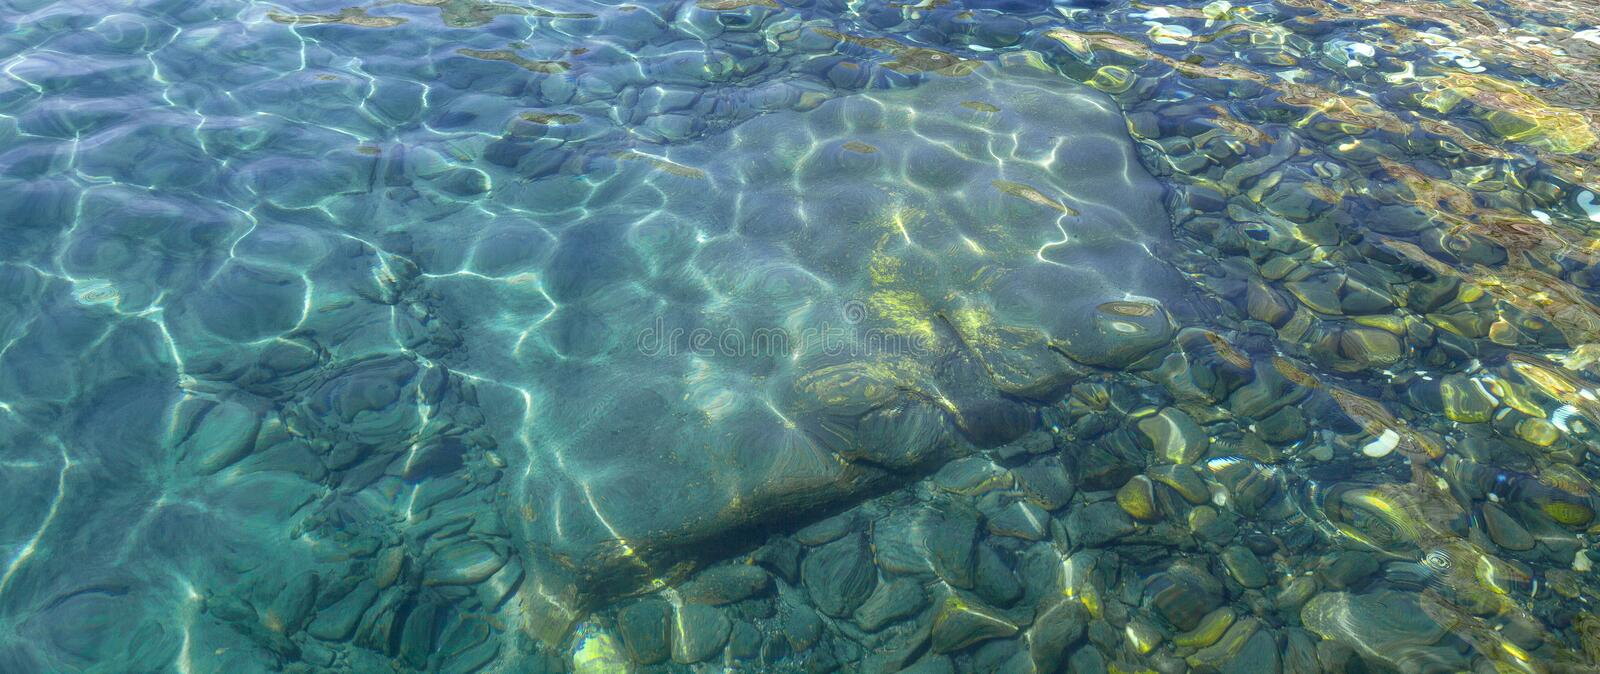 Colorful pebbles and big stone under clear water stock image